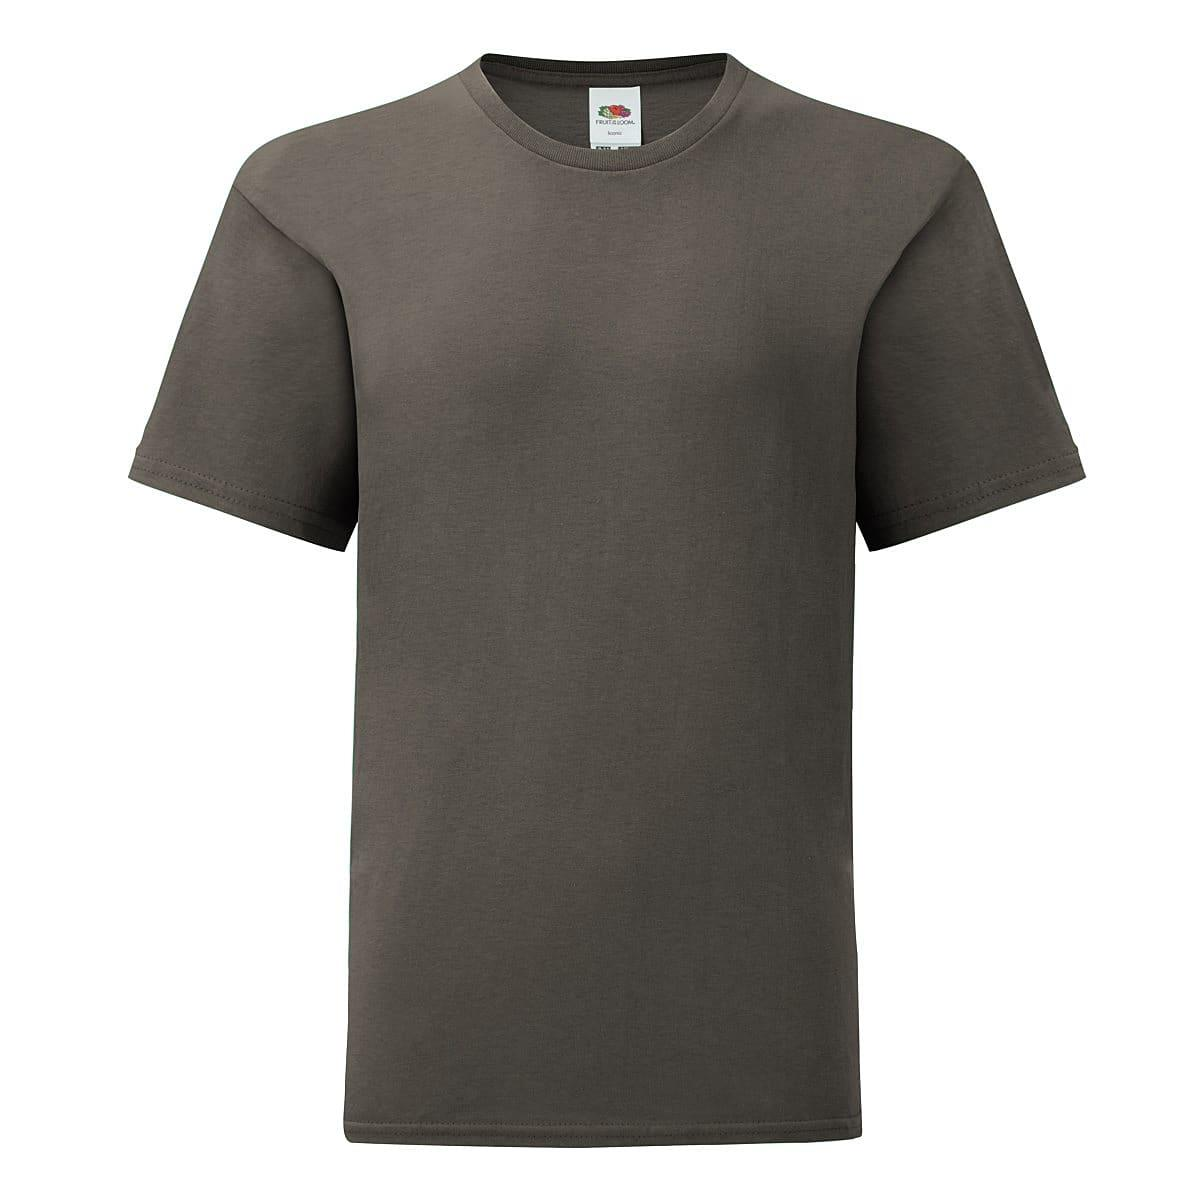 Fruit Of The Loom Kids Iconic T-Shirt in Light Graphite (Product Code: 61023)